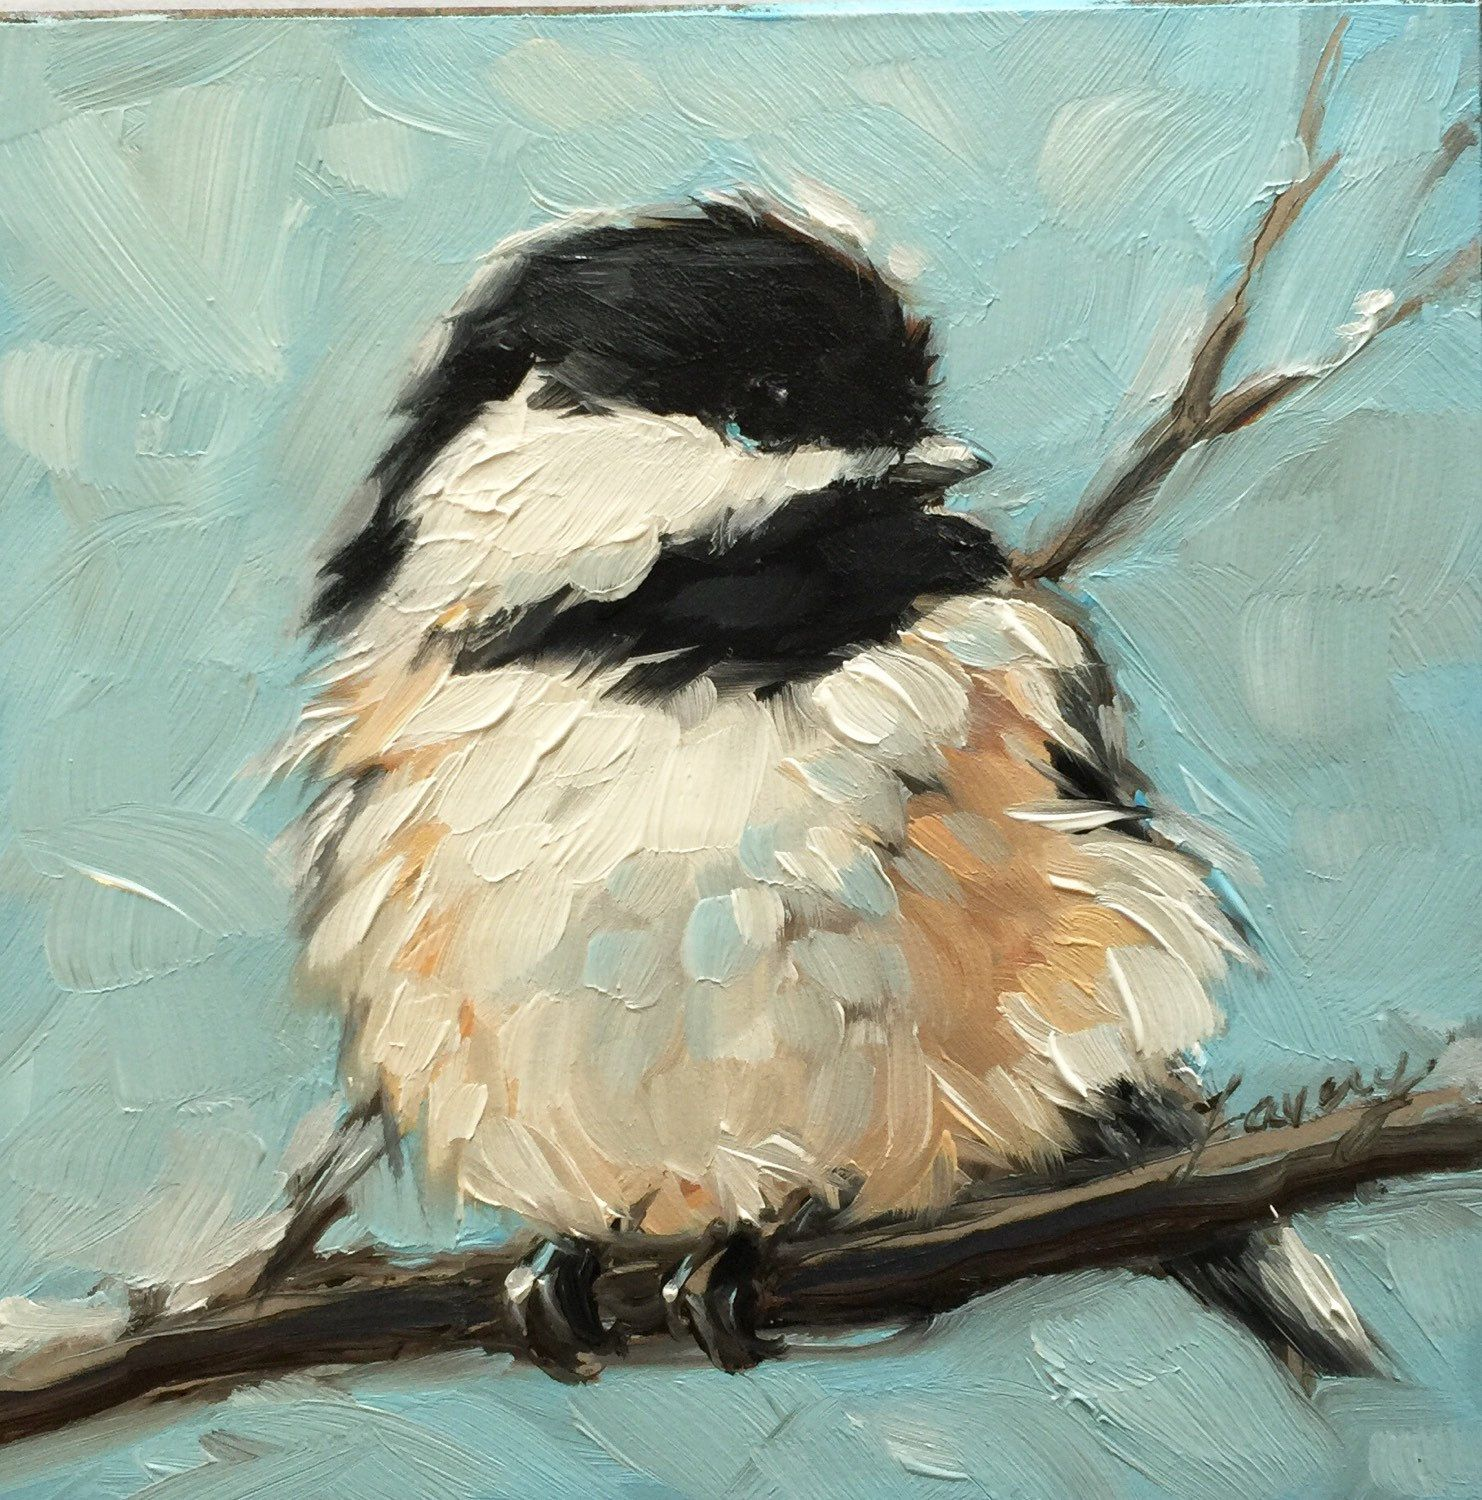 Art farm animal watercolor painting on canvas art 8x10 artsyhome - Chickadee Art Impressionistic 4x4 Original Oil Painting Of A Chickadee Bird Paintings